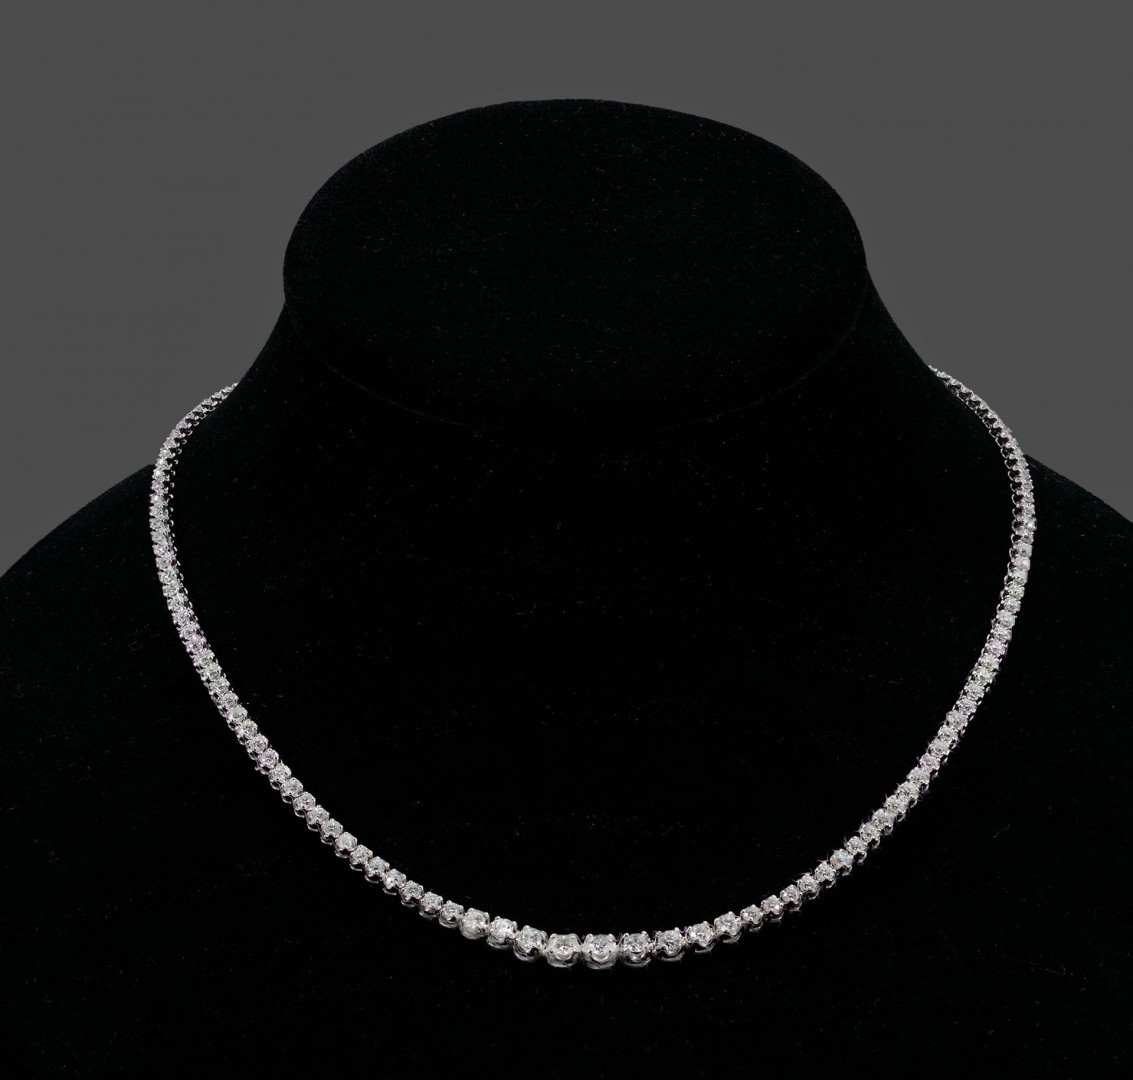 Lot 113: 18KT white gold and diamond necklace, 134 diamonds